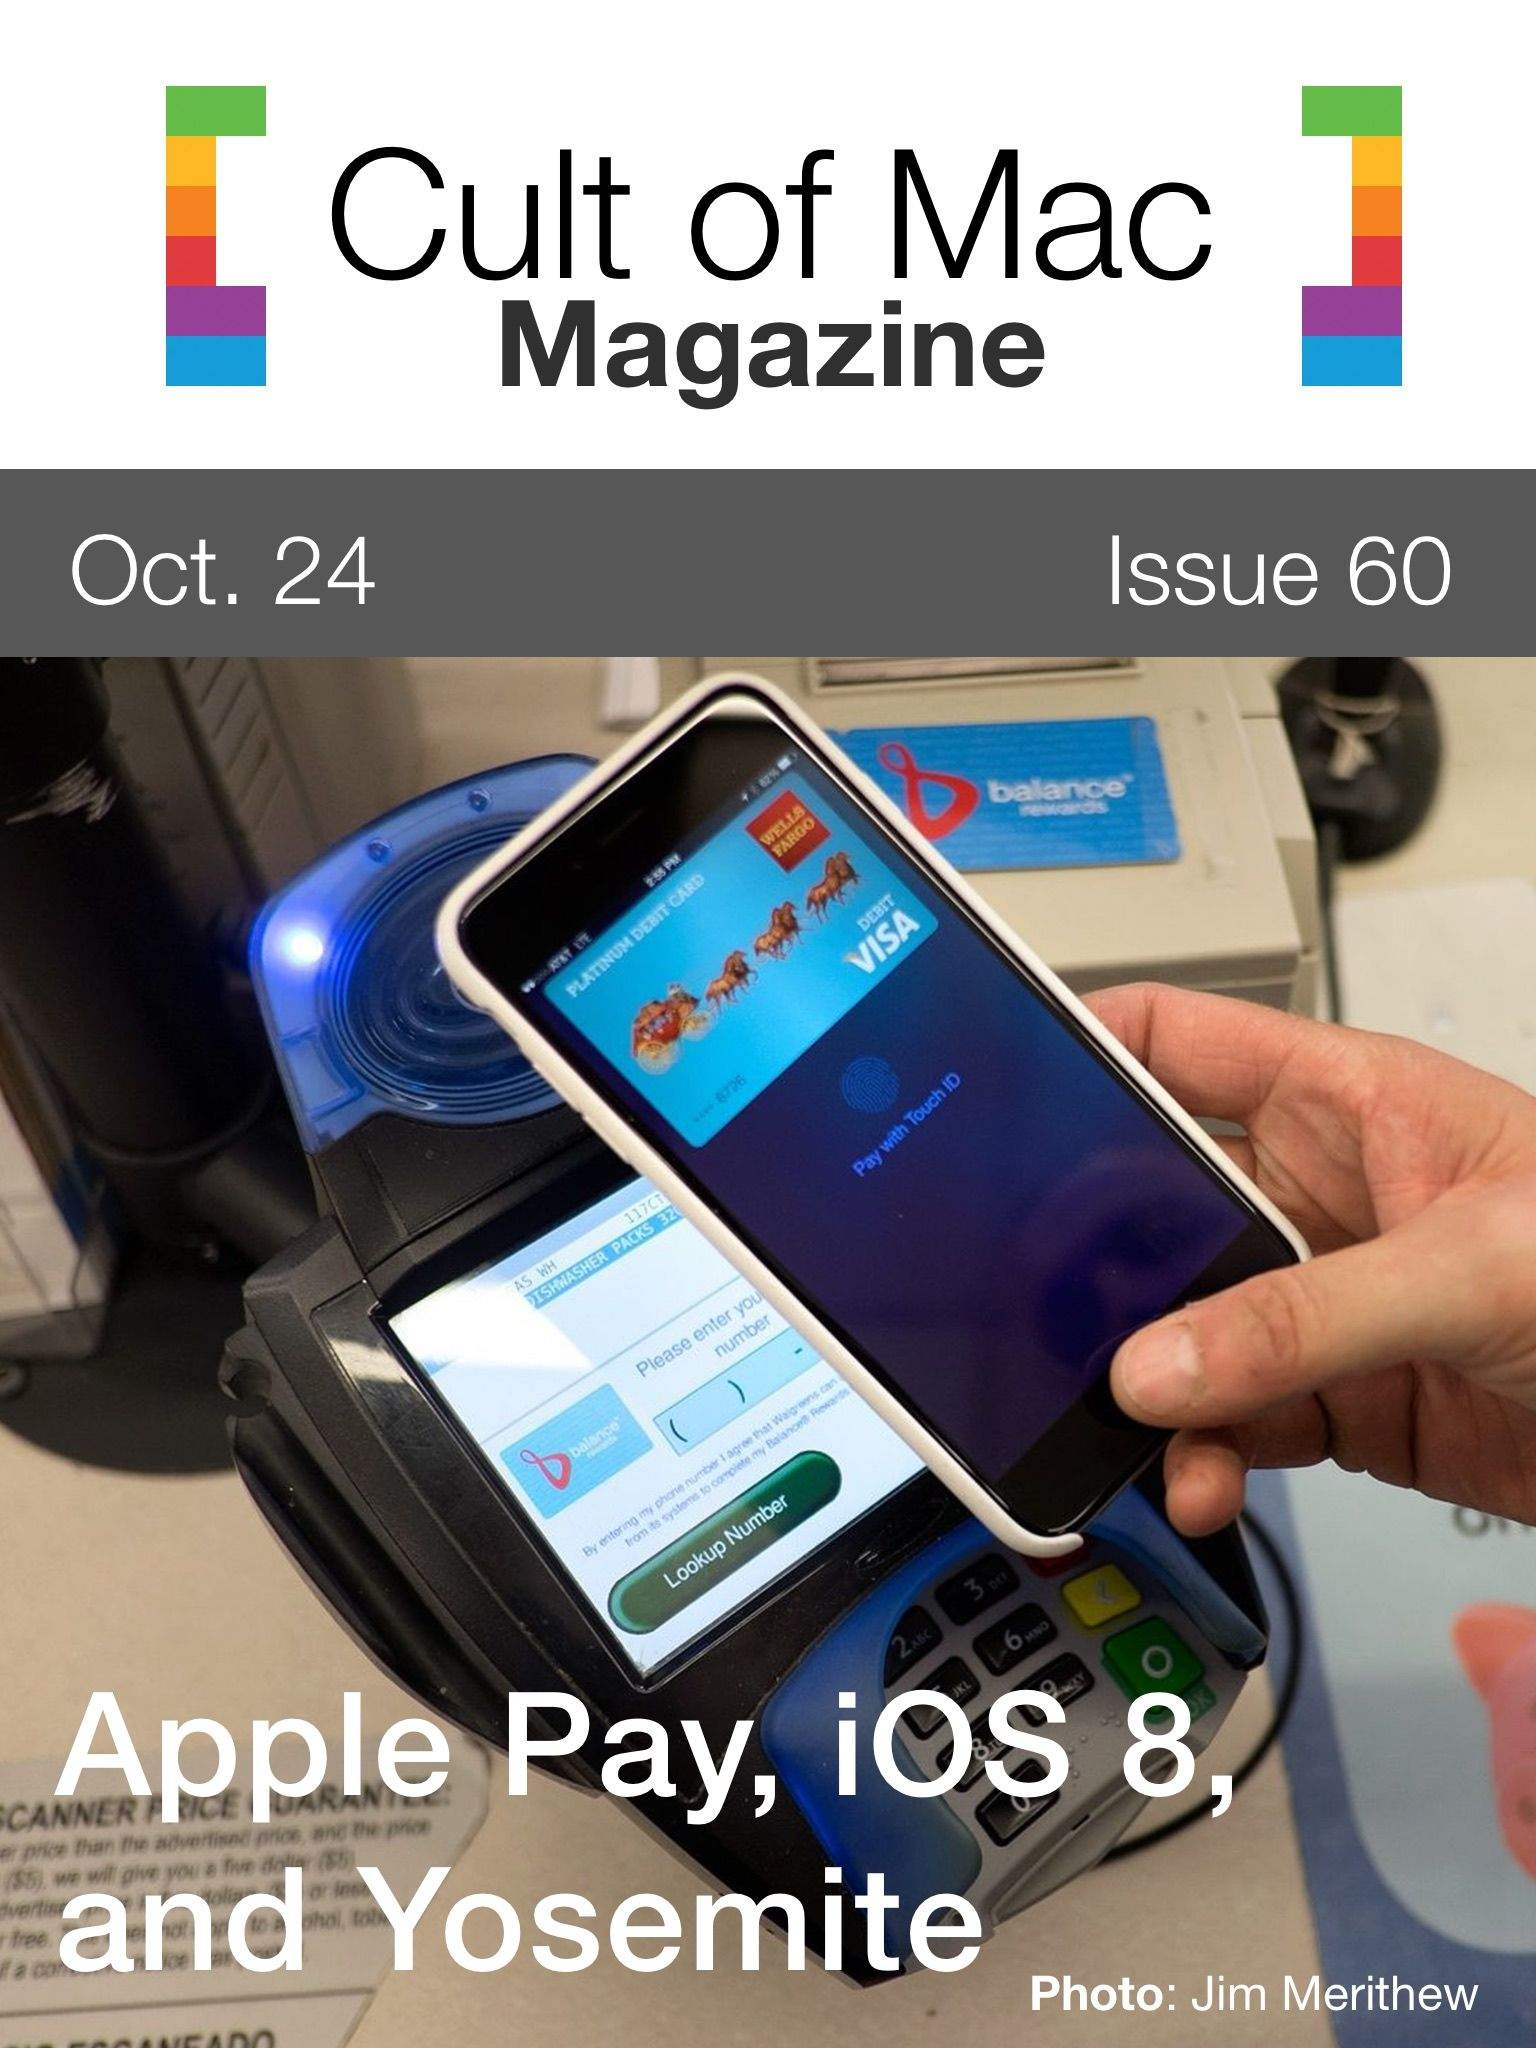 Apple Pay, iOS 8.1, Yosemite, and more! Cover Design: Rob LeFebvre/Cult of Mac